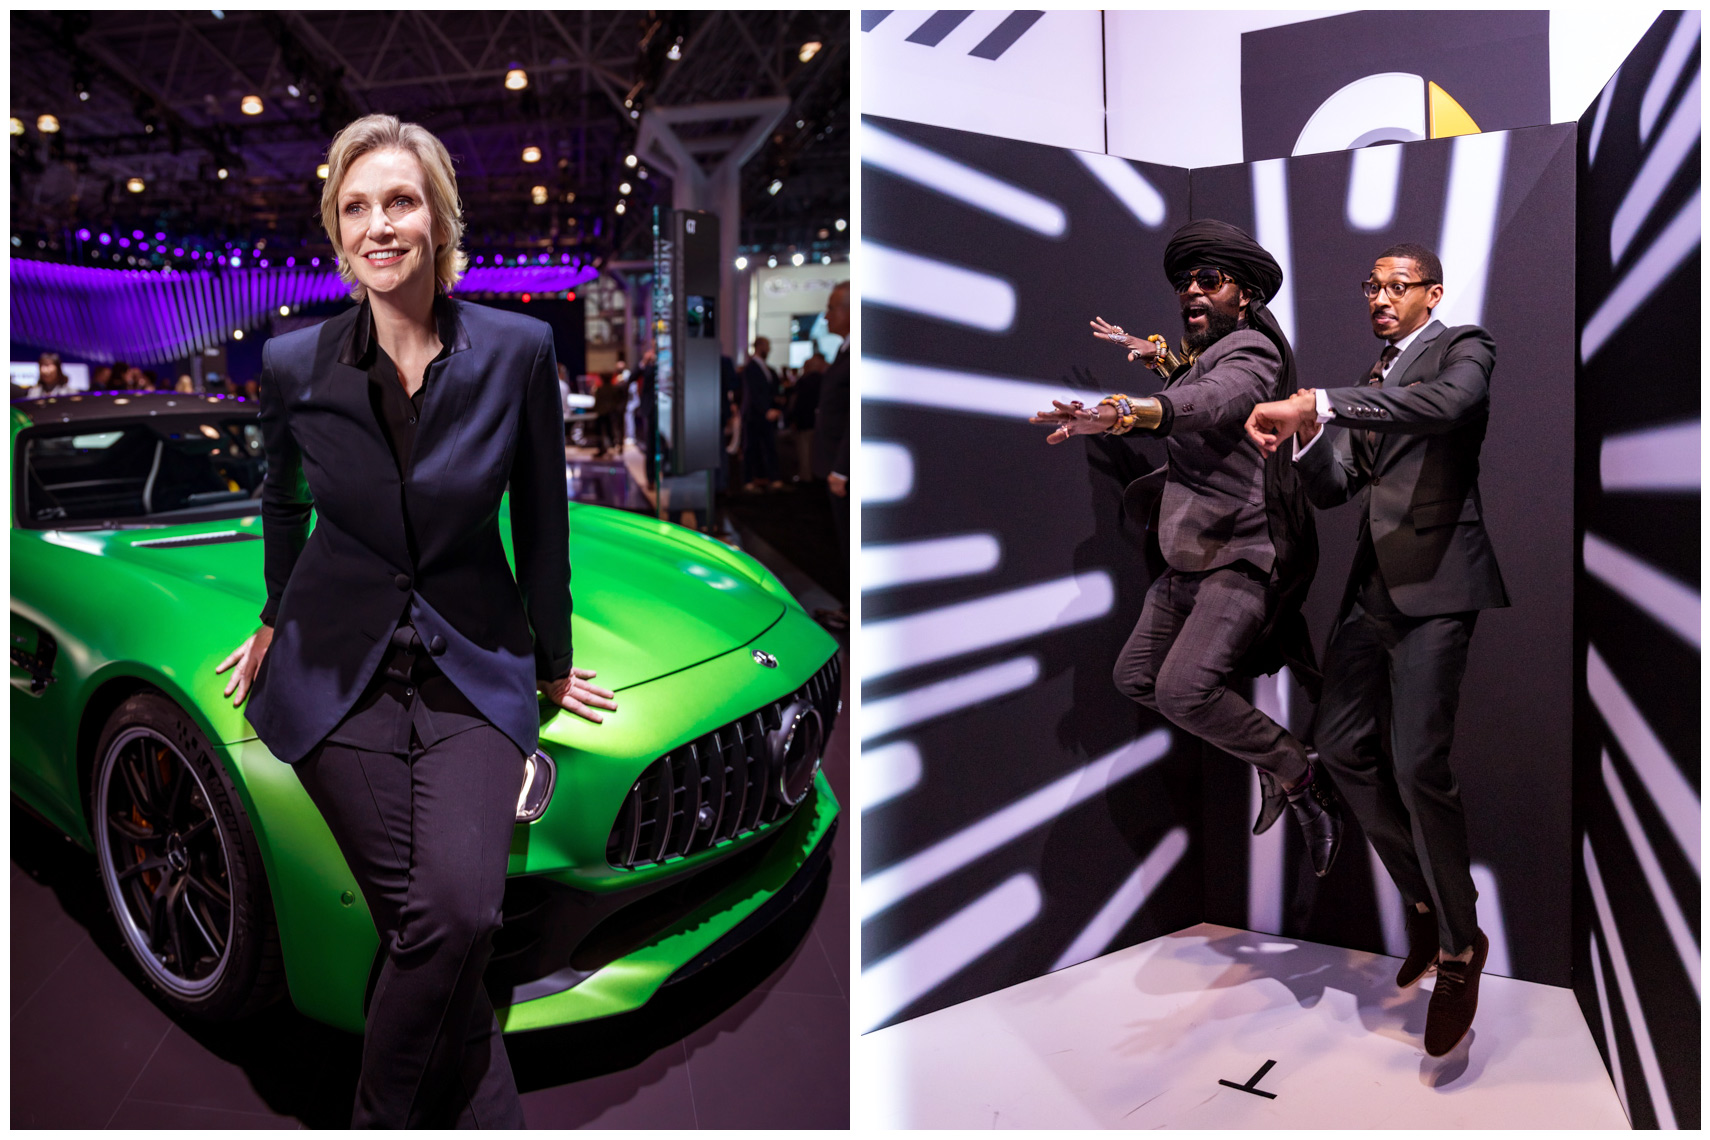 Jane Lynch at a Mercedes-Benz party at the New York auto show AMG GT R